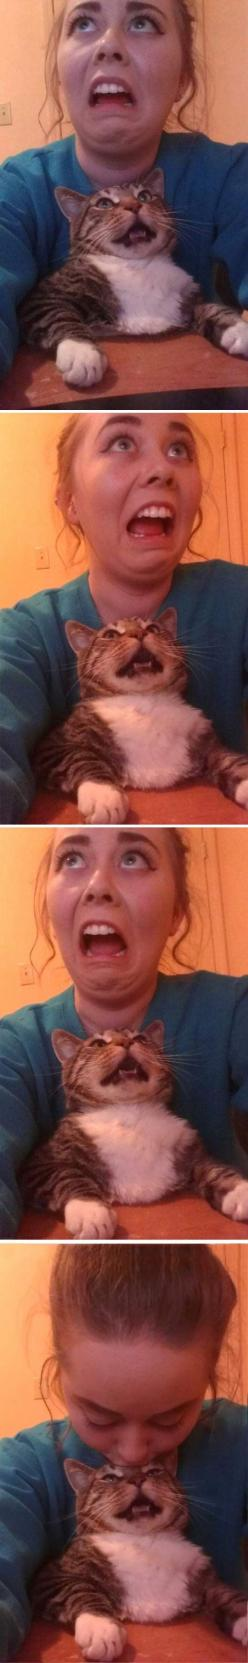 Cat: Selfie, Kitty Cat, Funny Cats, Kind, Animal, Cat Lady